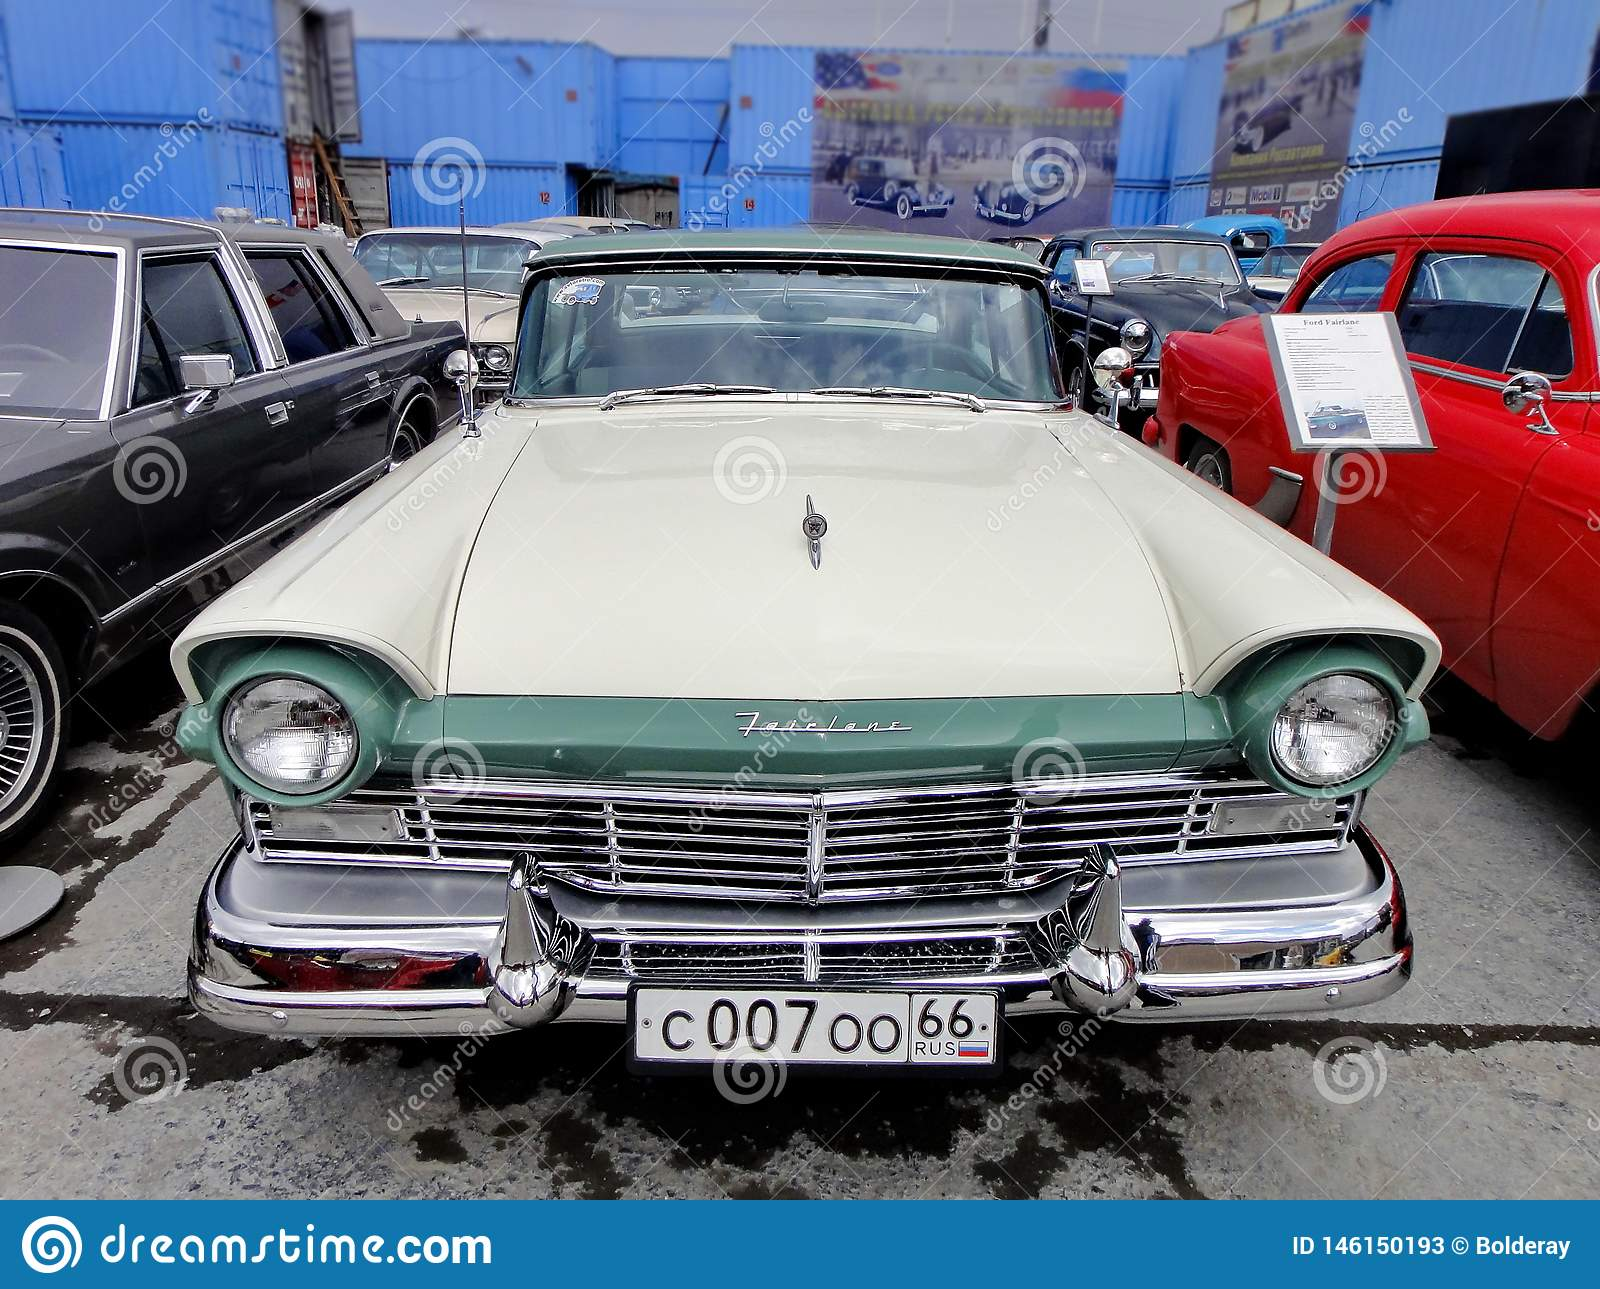 Exhibition Of Retro Cars  Car `Ford Fairlane`, Year Of